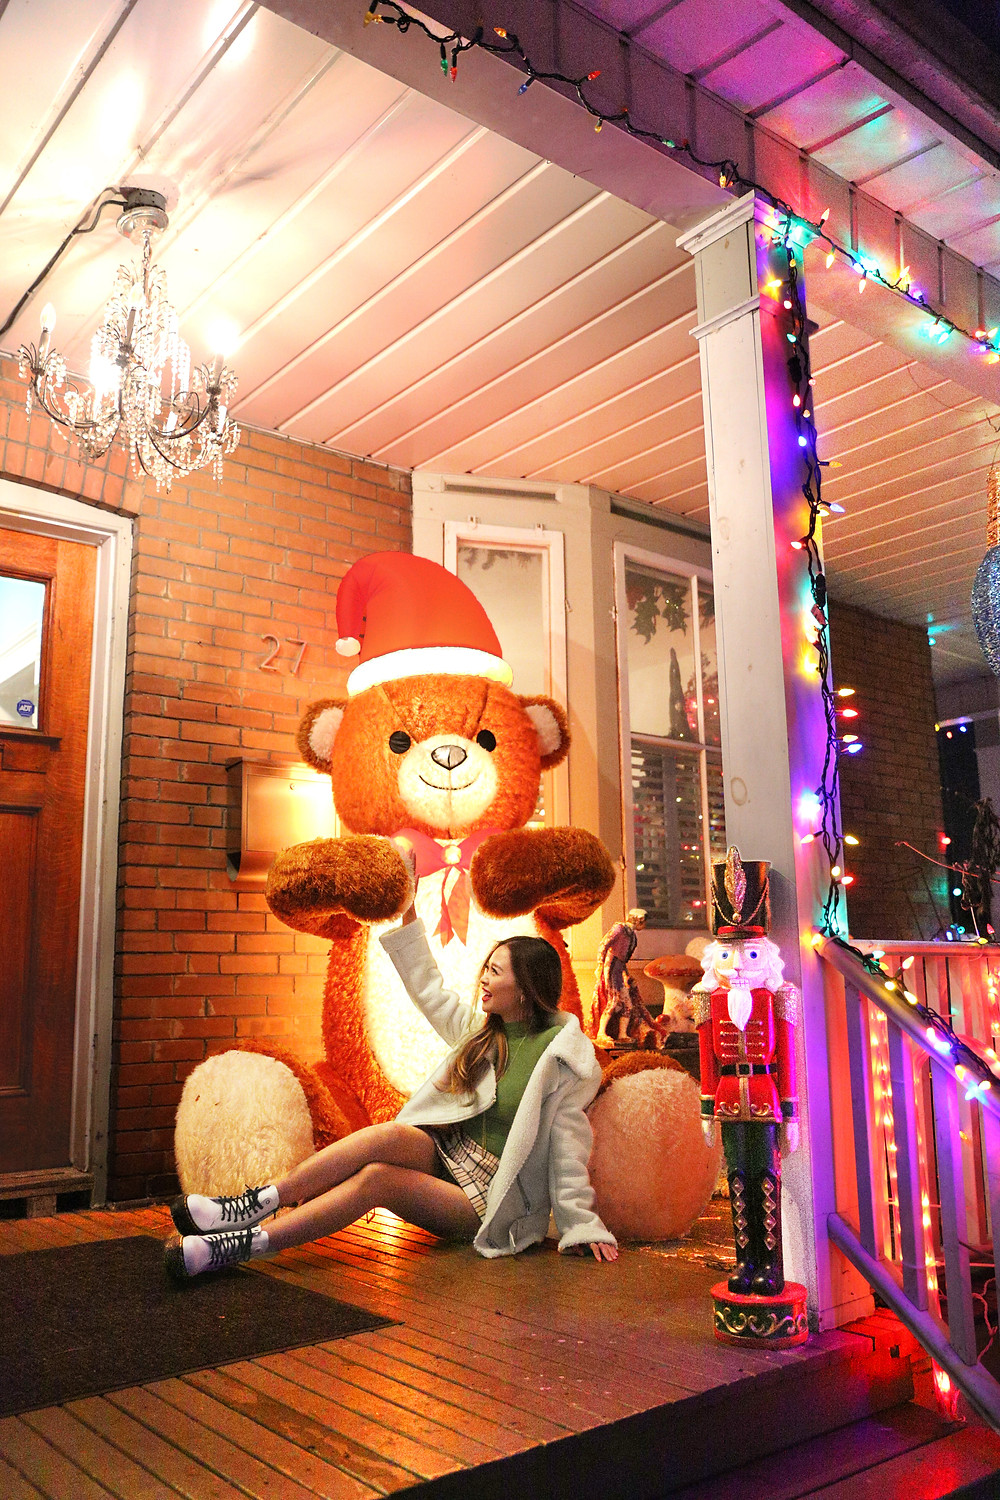 Girl sitting on front porch with oversized teddy bear